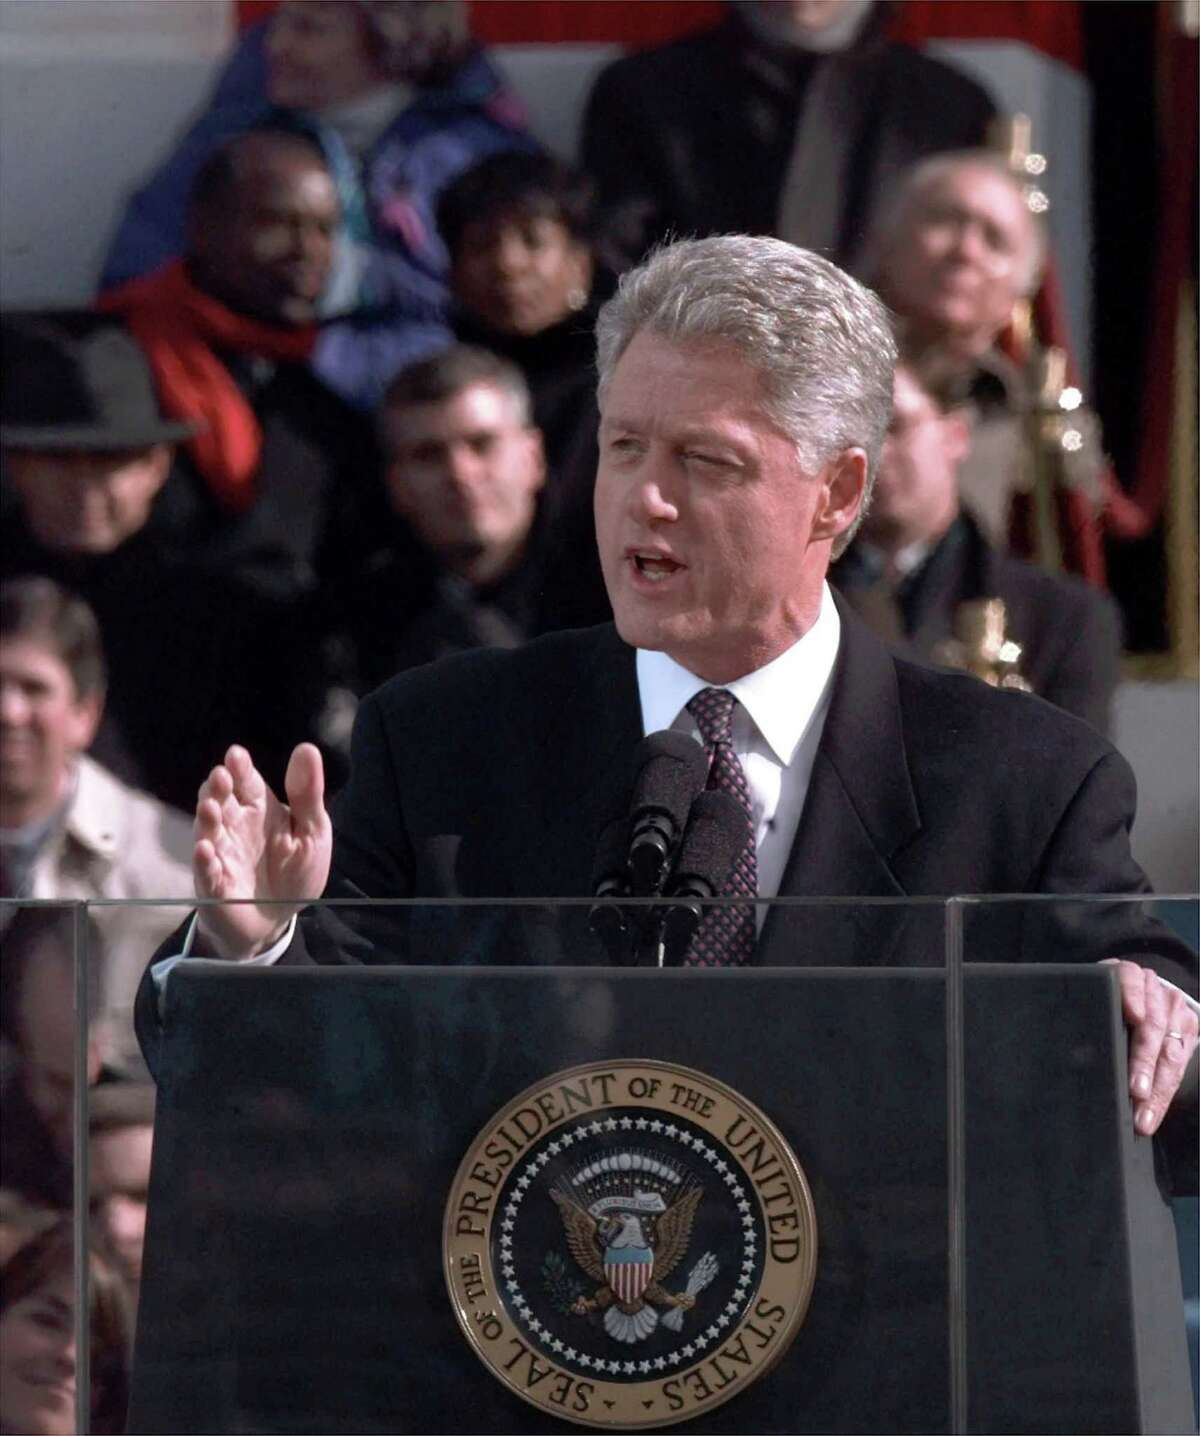 DOMA debuts - September 1996 President Bill Clinton signed the Defense of Marriage Act, which allowed states to refuse to recognize gay marriages granted in other states.